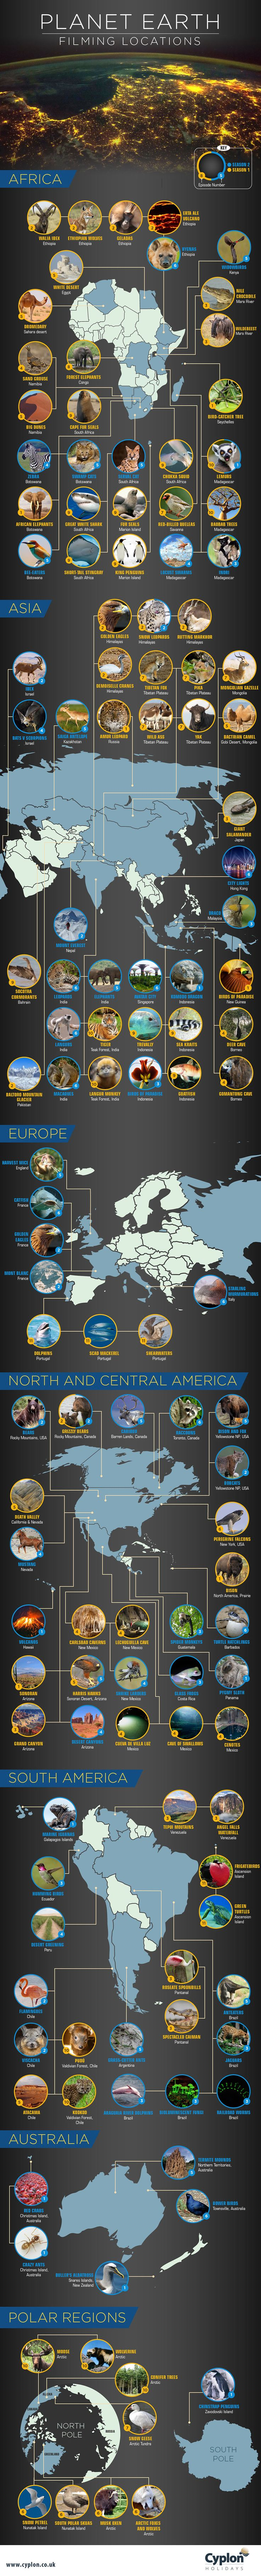 Filming Locations Featured in BBC Planet Earth Infographic. Topic: travel, nature, animals, environment, documentary film, map.